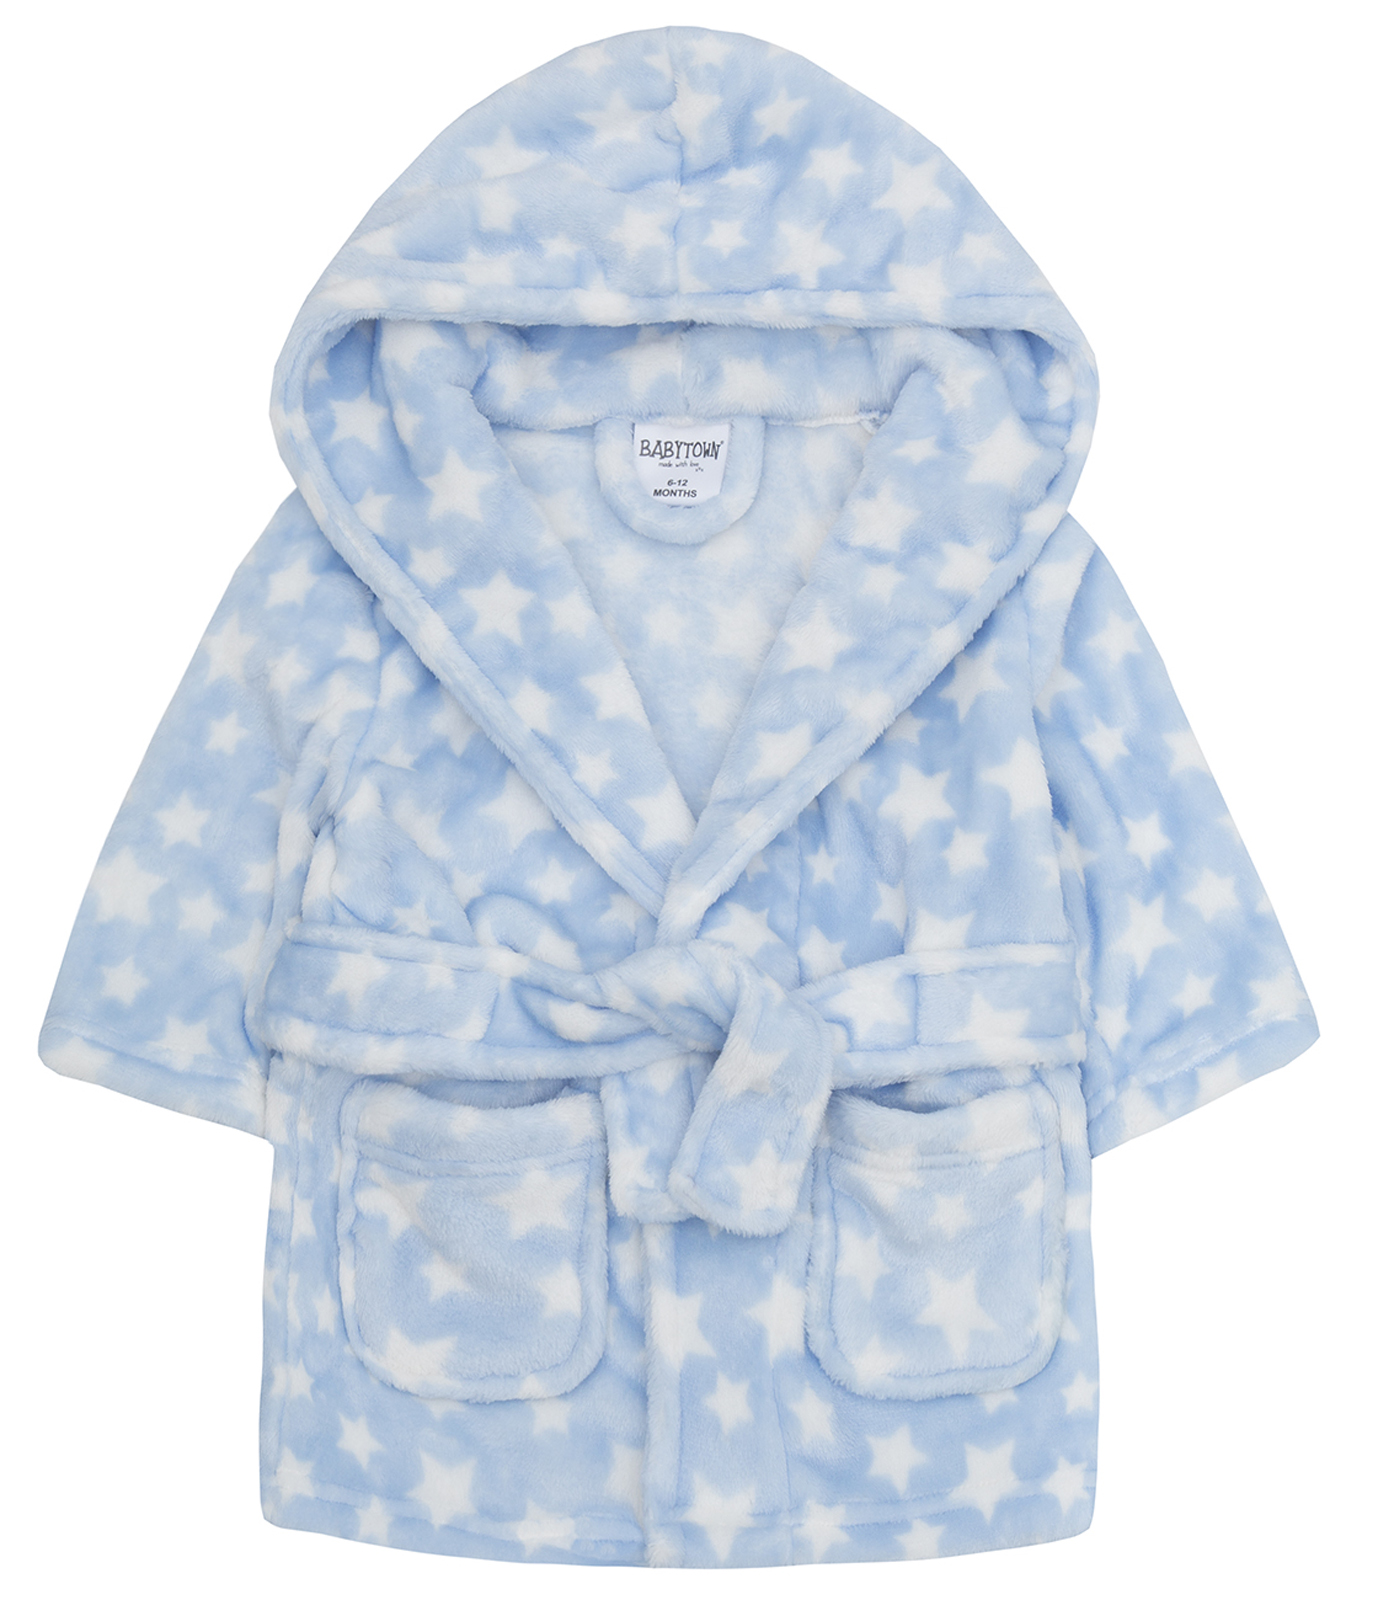 Boys Dressing Gown Plane Print Soft Hooded Fleece Blue Robe Ages 2 3 4 5 6 Years